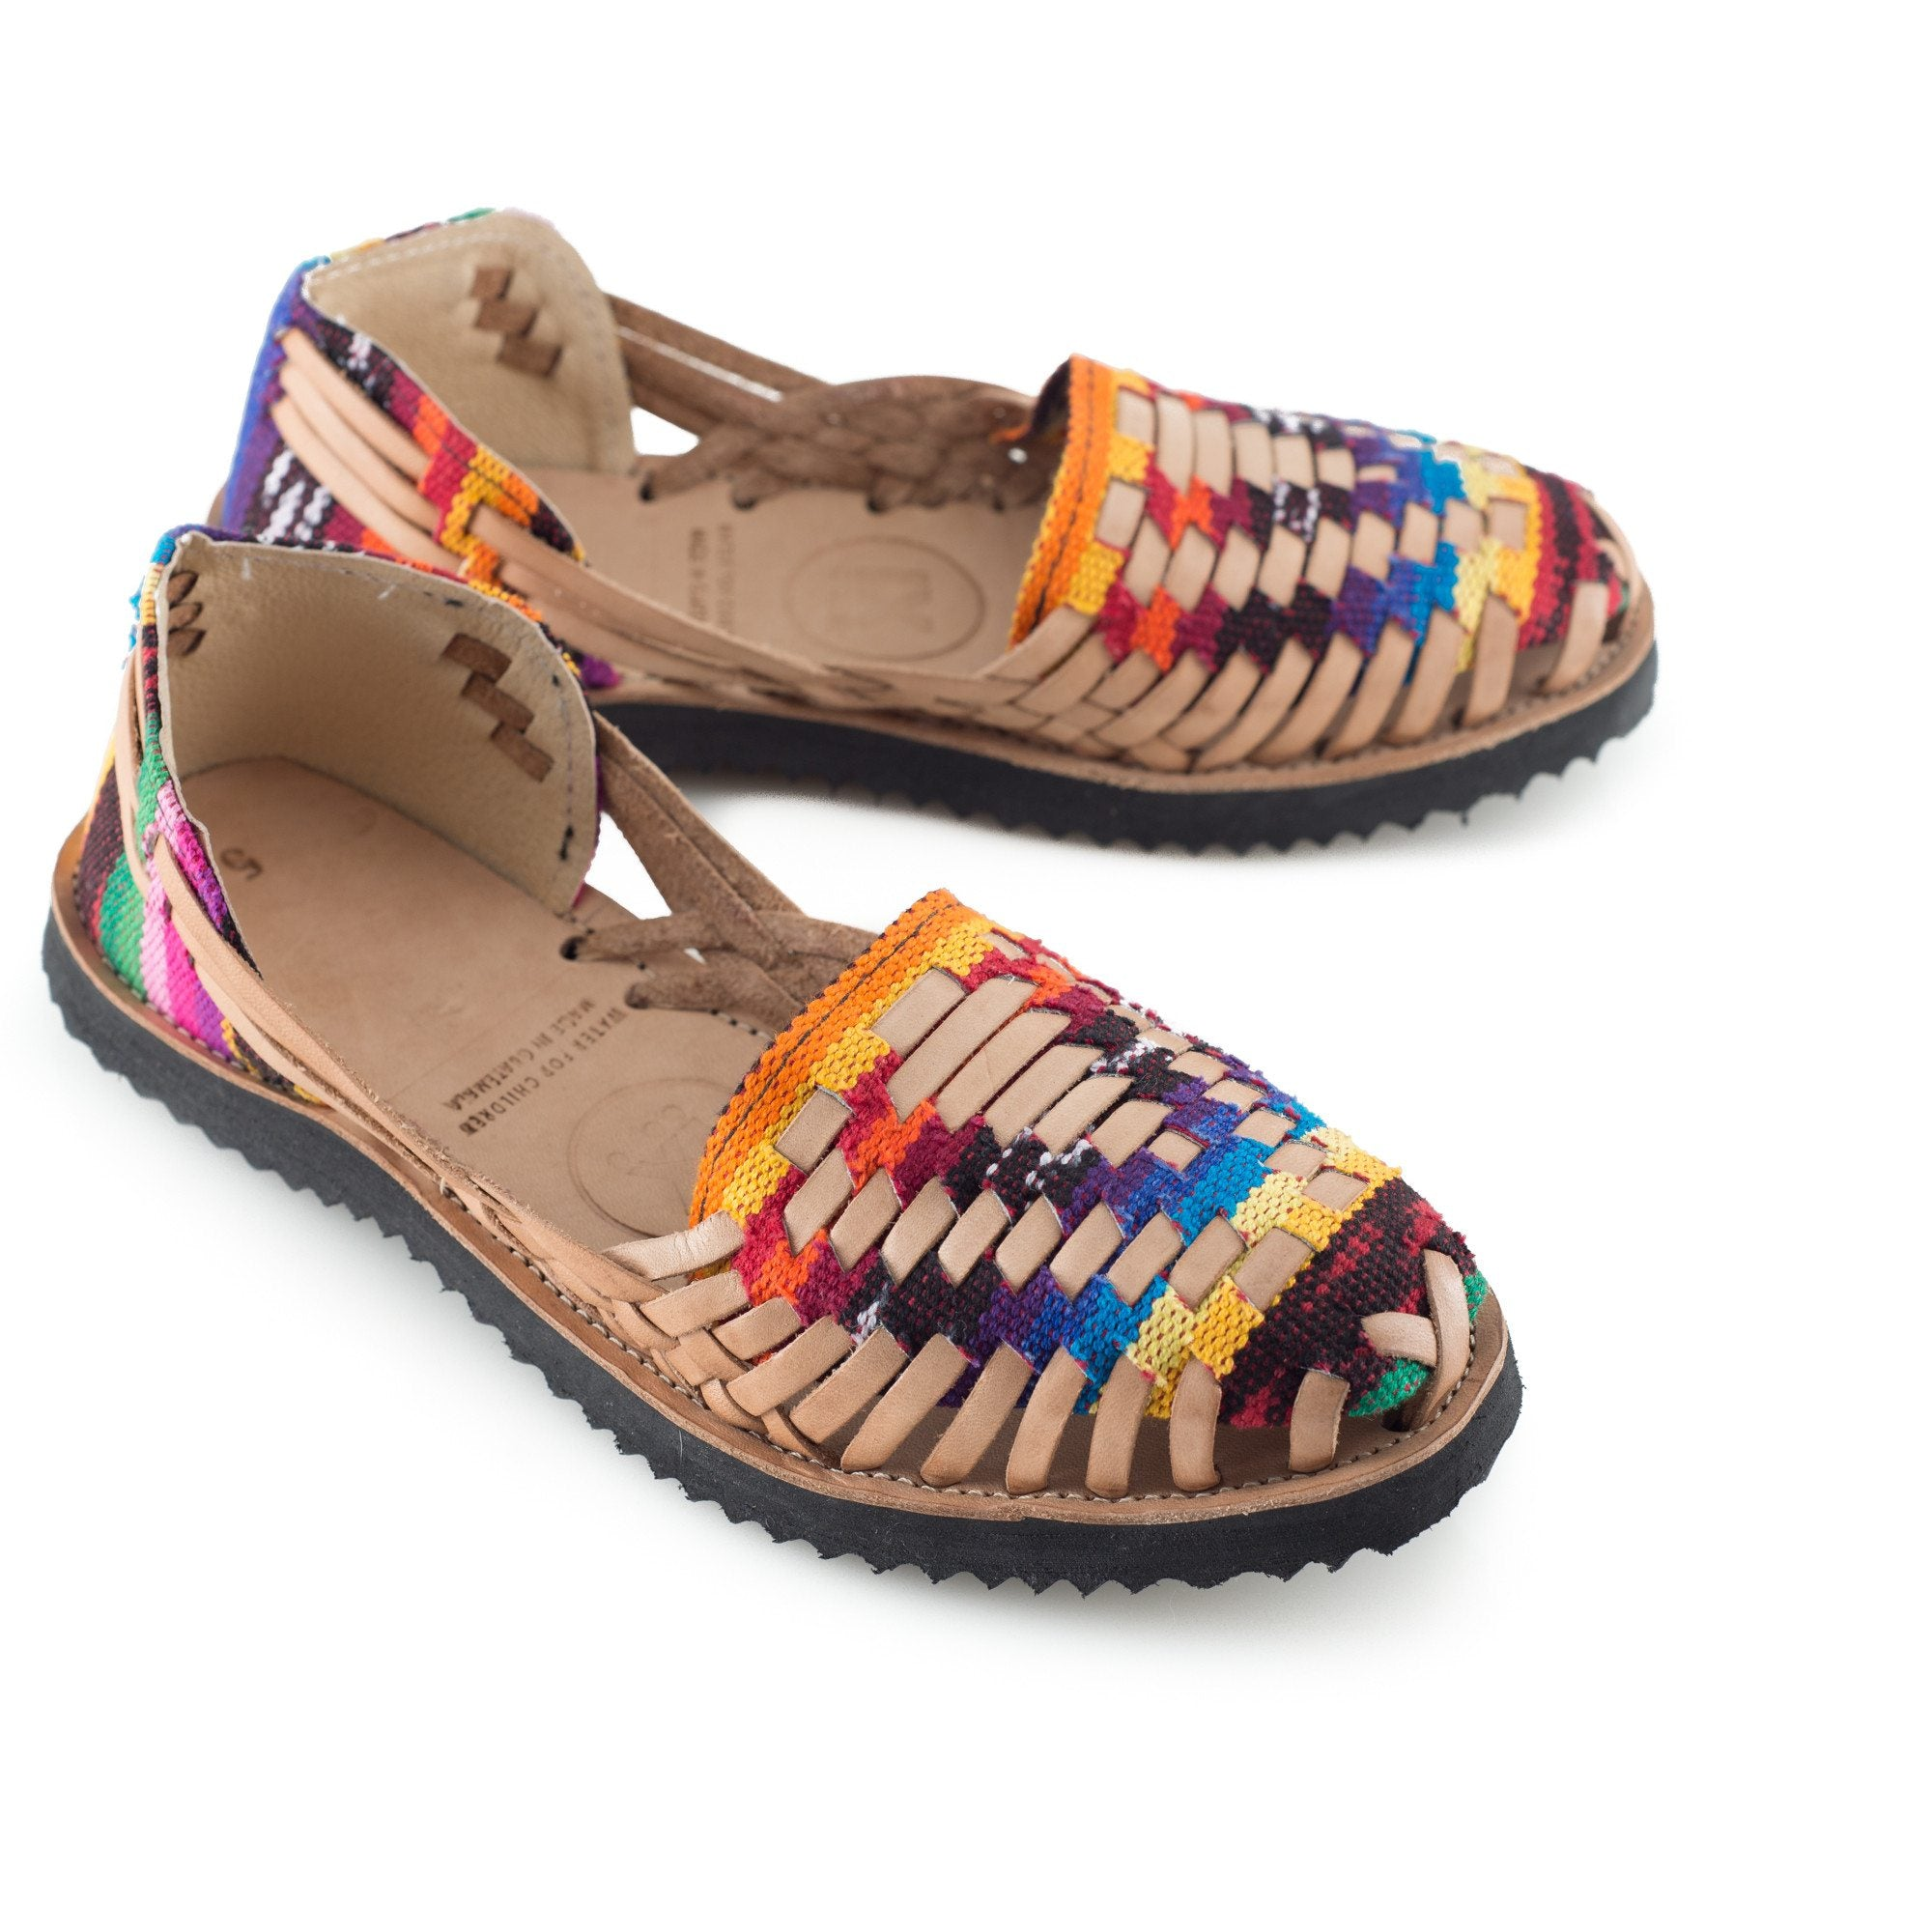 195cb76f8910 Women s Traditional Mayan Woven Leather Huarache Sandals - Ix Style - Water  For Children